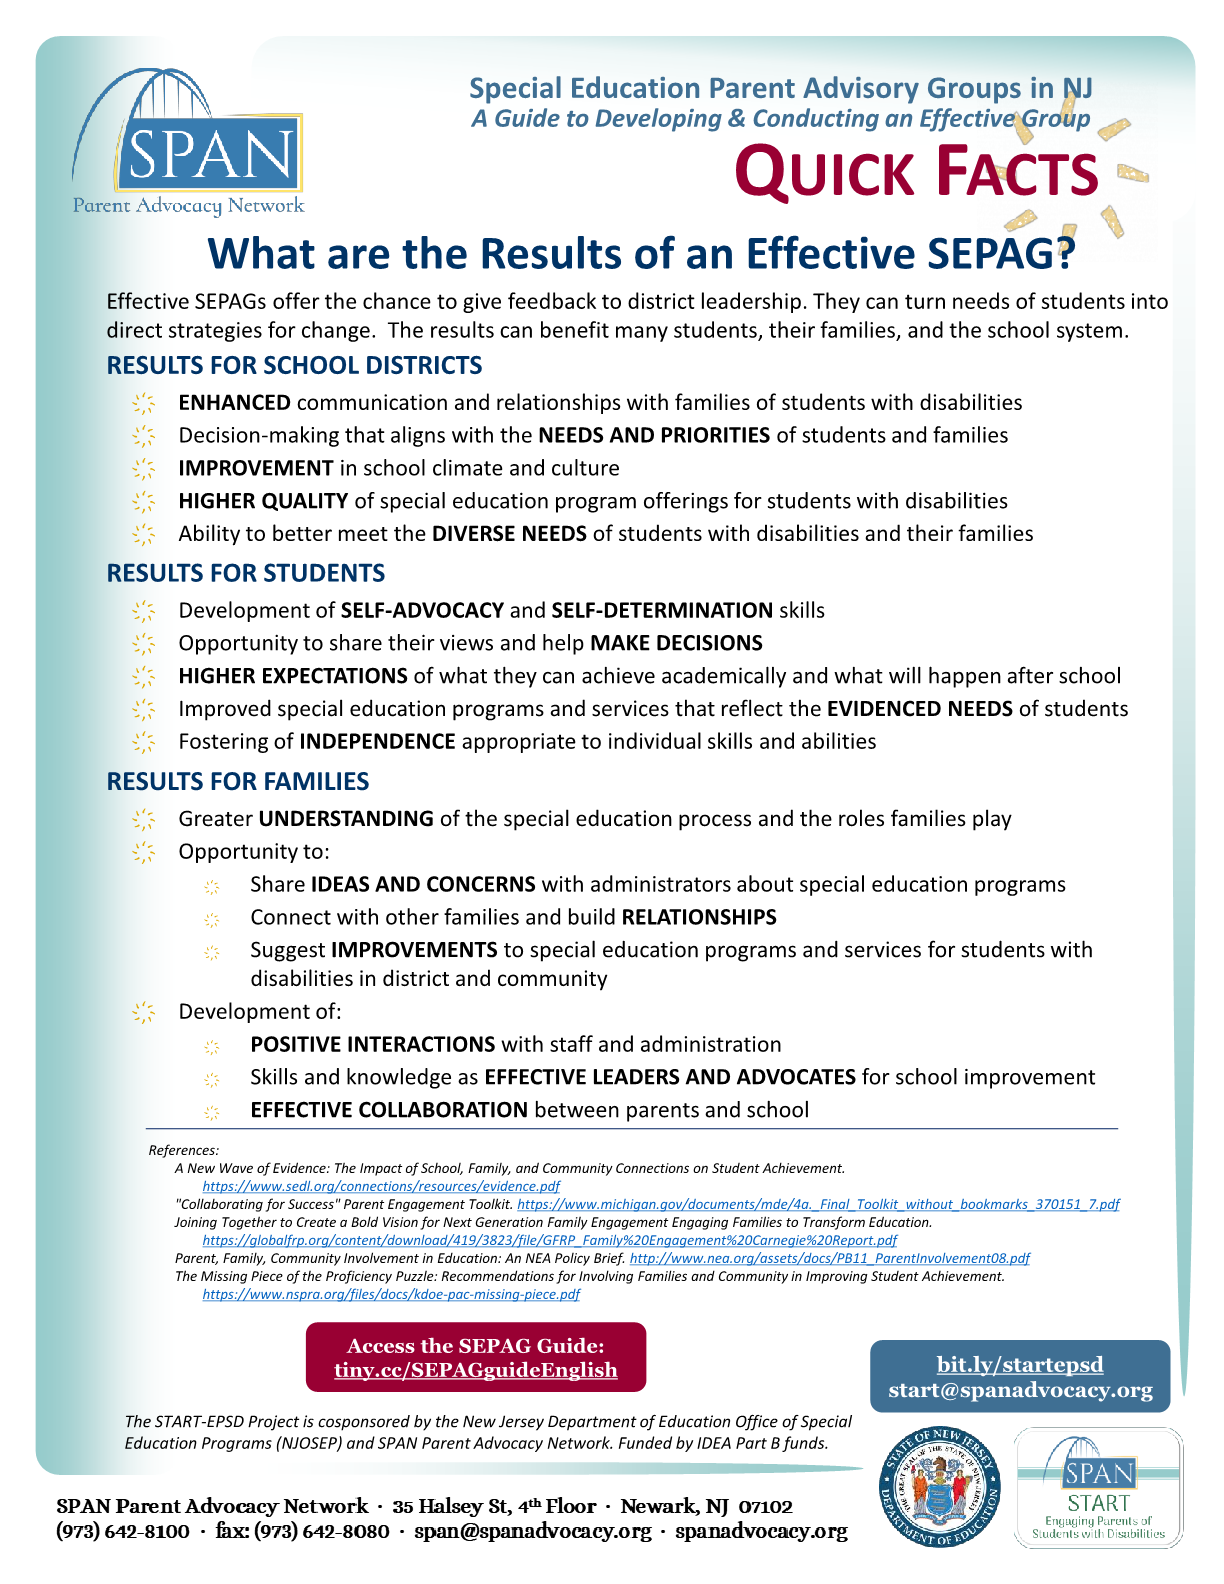 What are the Results of an Effective SEPAG? | Quick Guide